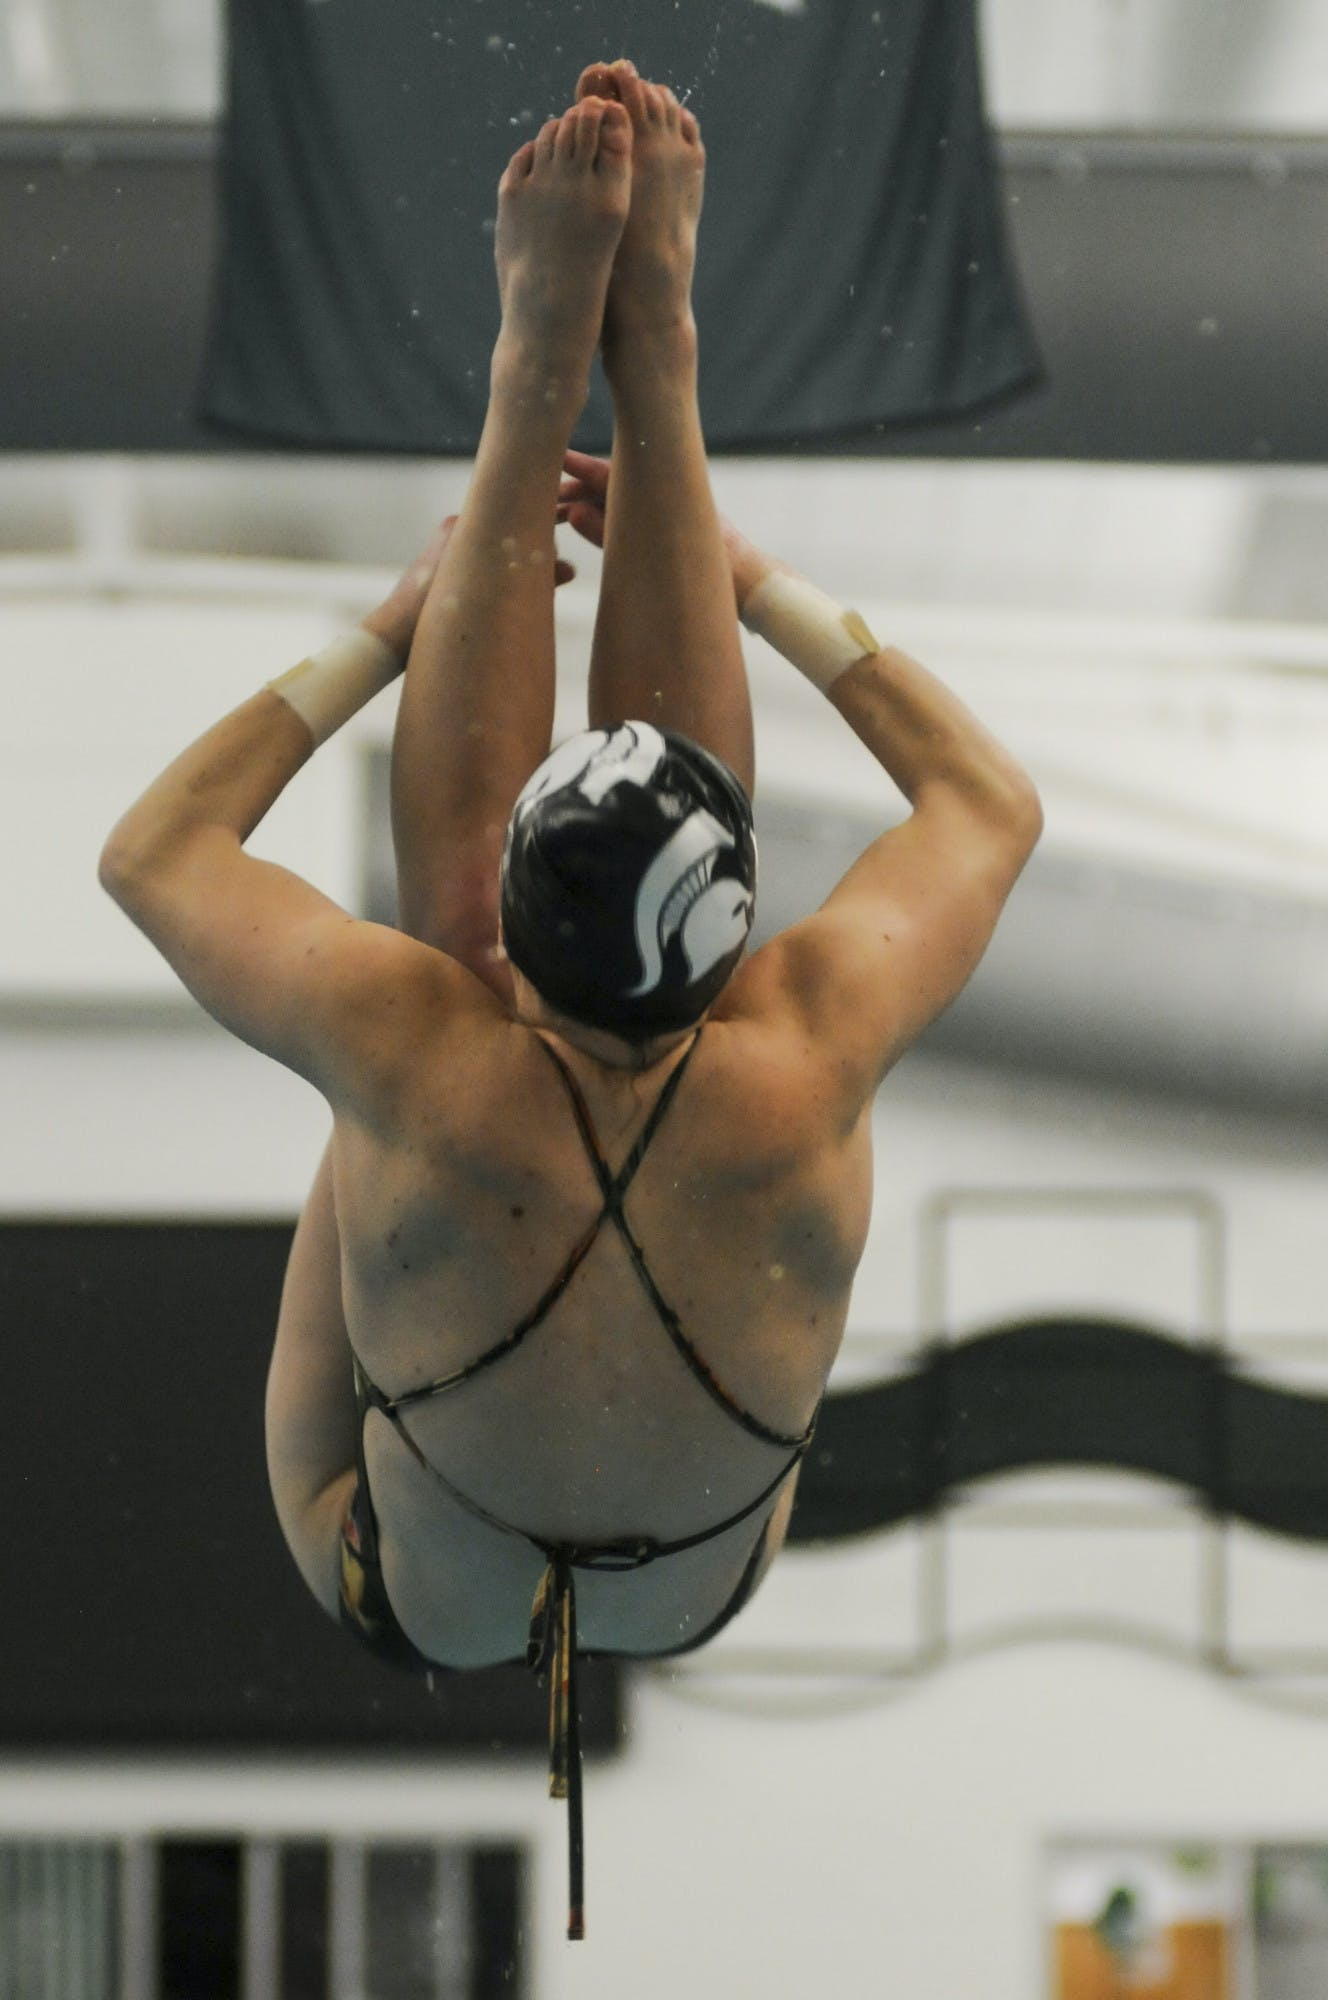 A person wearing a swimsuit and swim cap dives in mid-air, with their legs straight but tucked toward their body over their head.